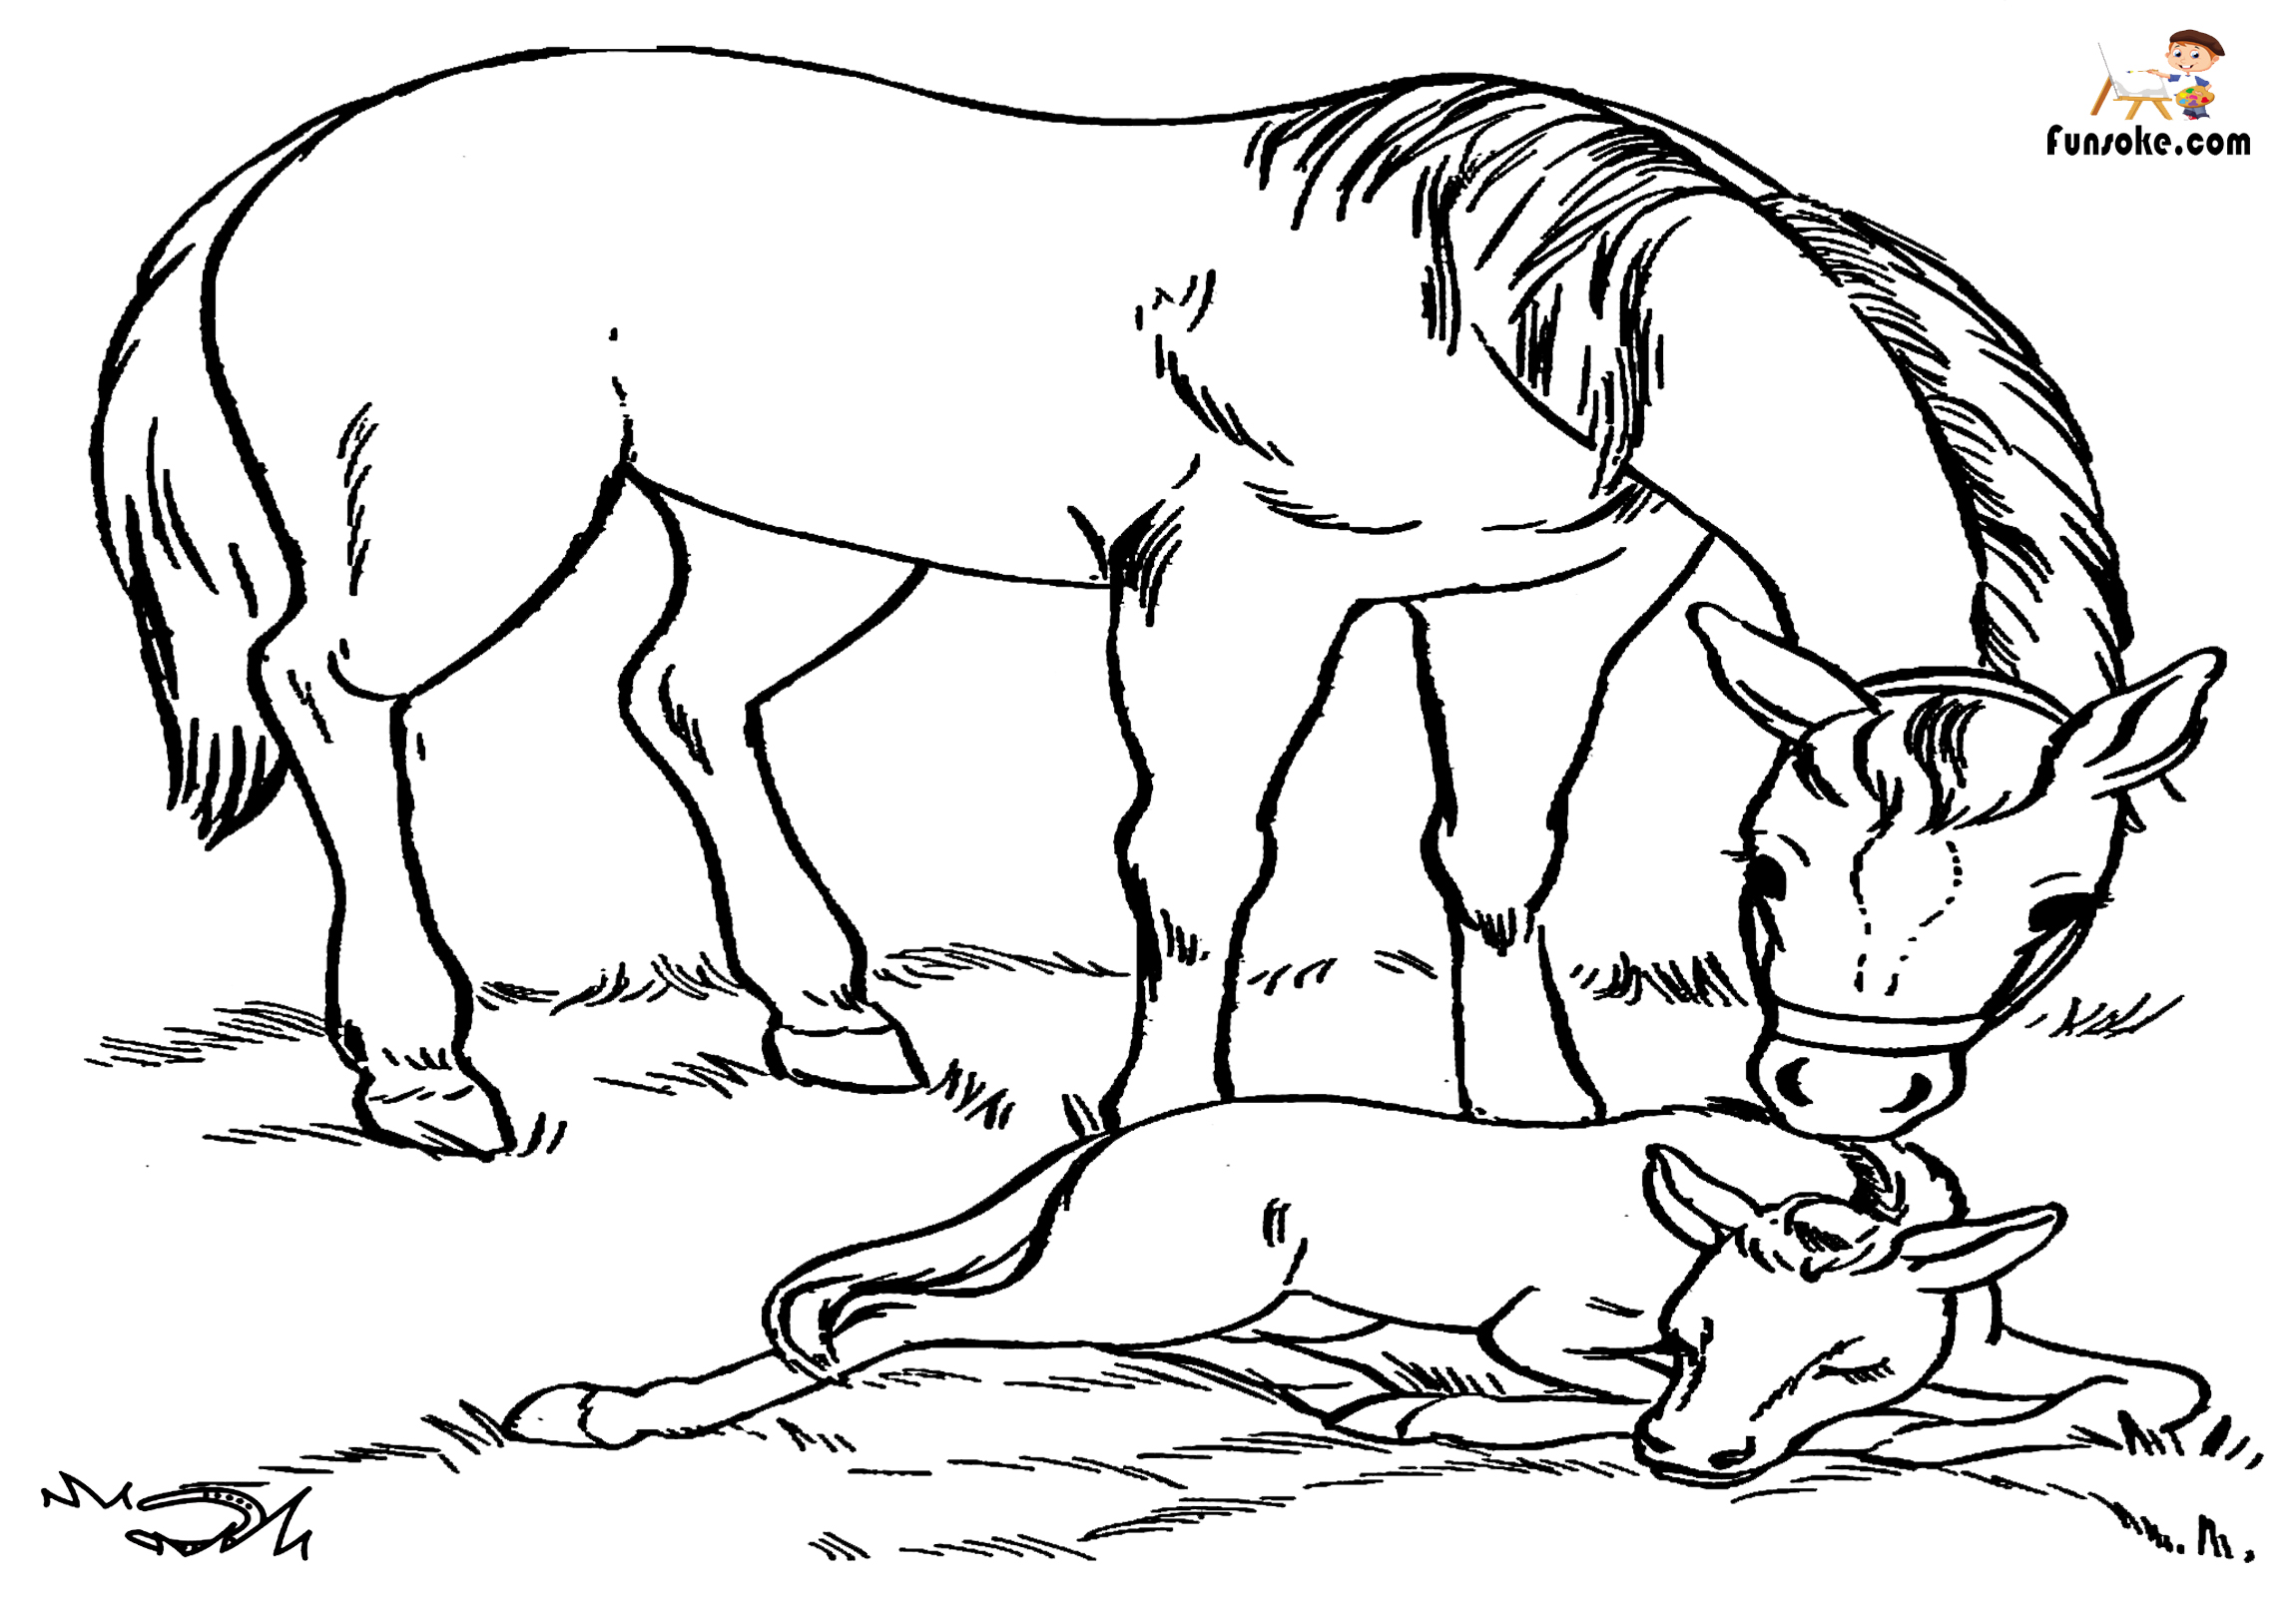 coloring pages of horse horses to print horses kids coloring pages coloring pages of horse